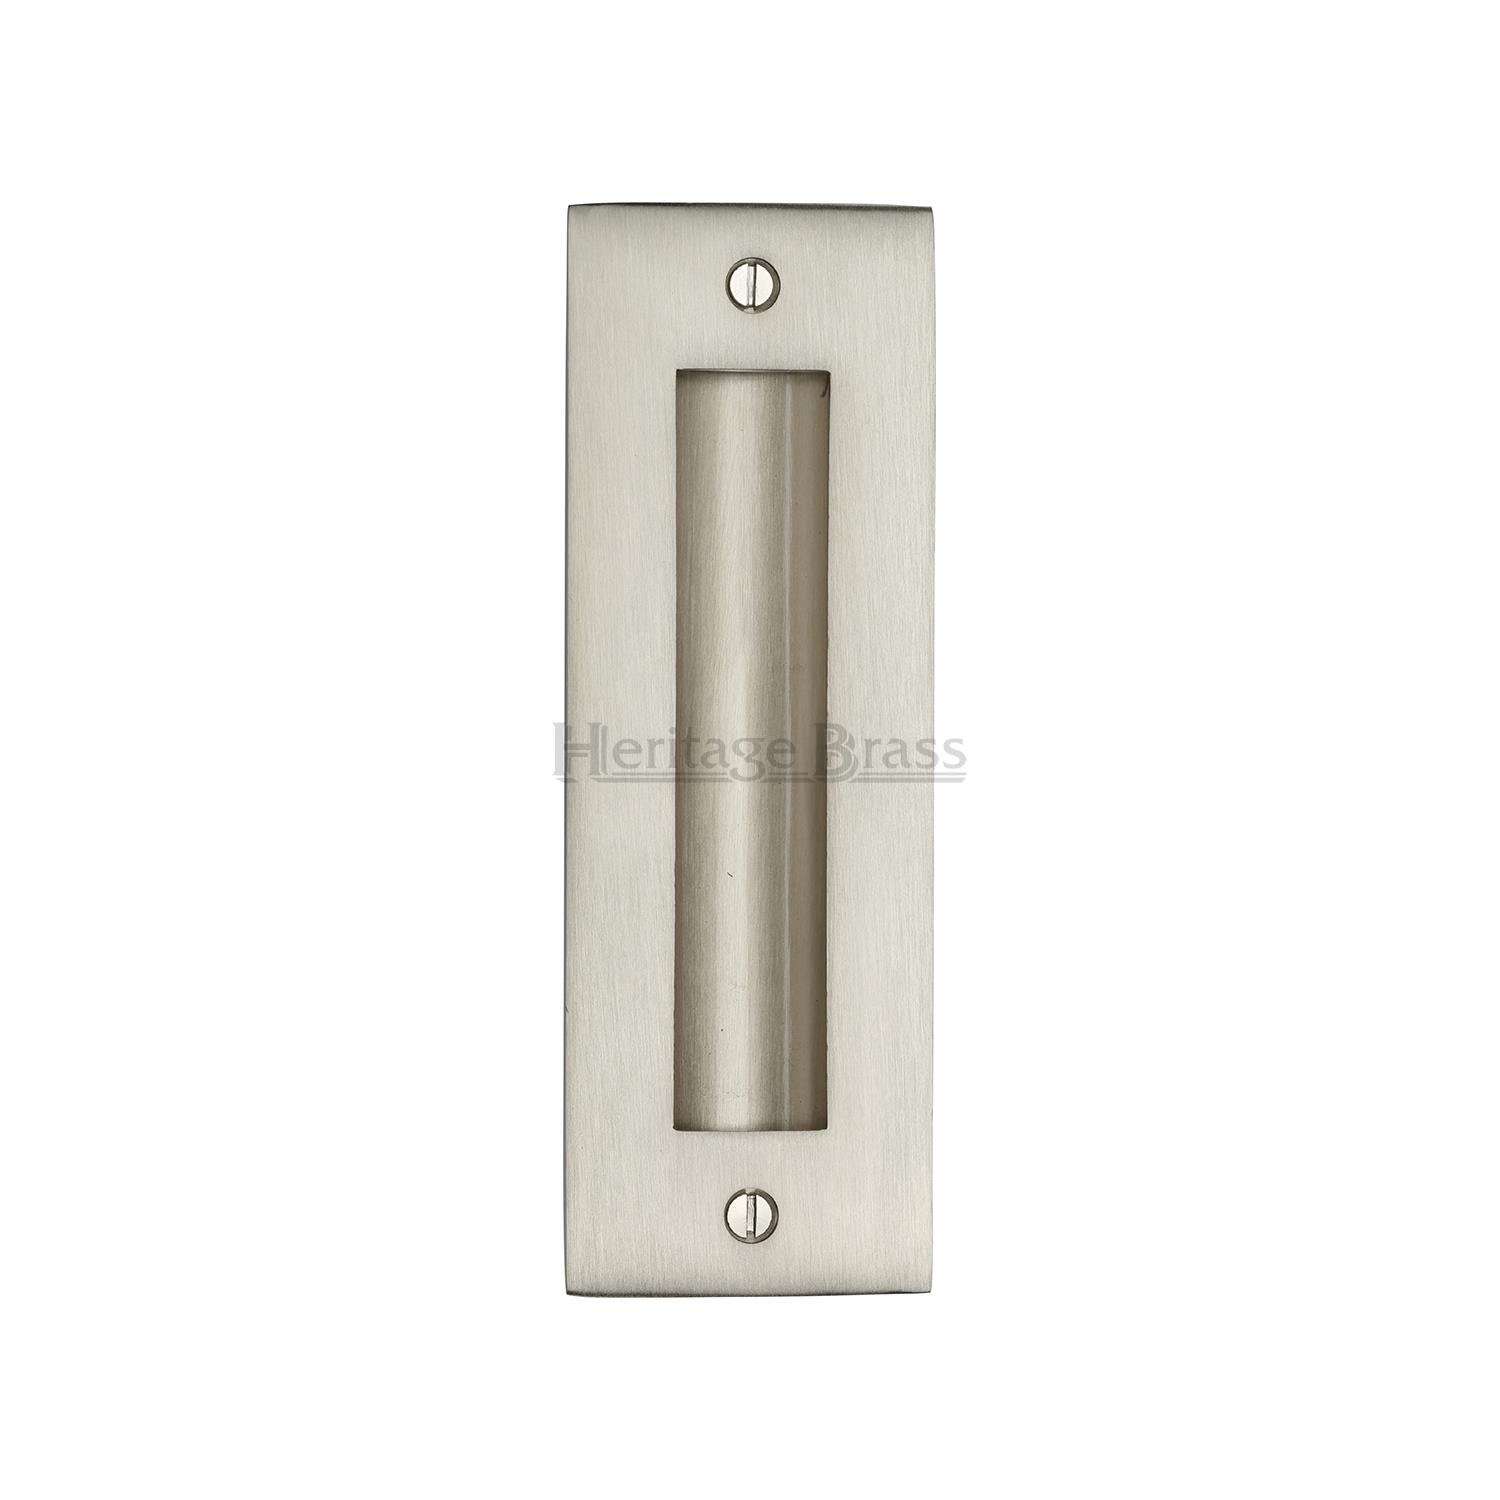 Flush Pull Handle 6 Quot Multiple Finishes Available